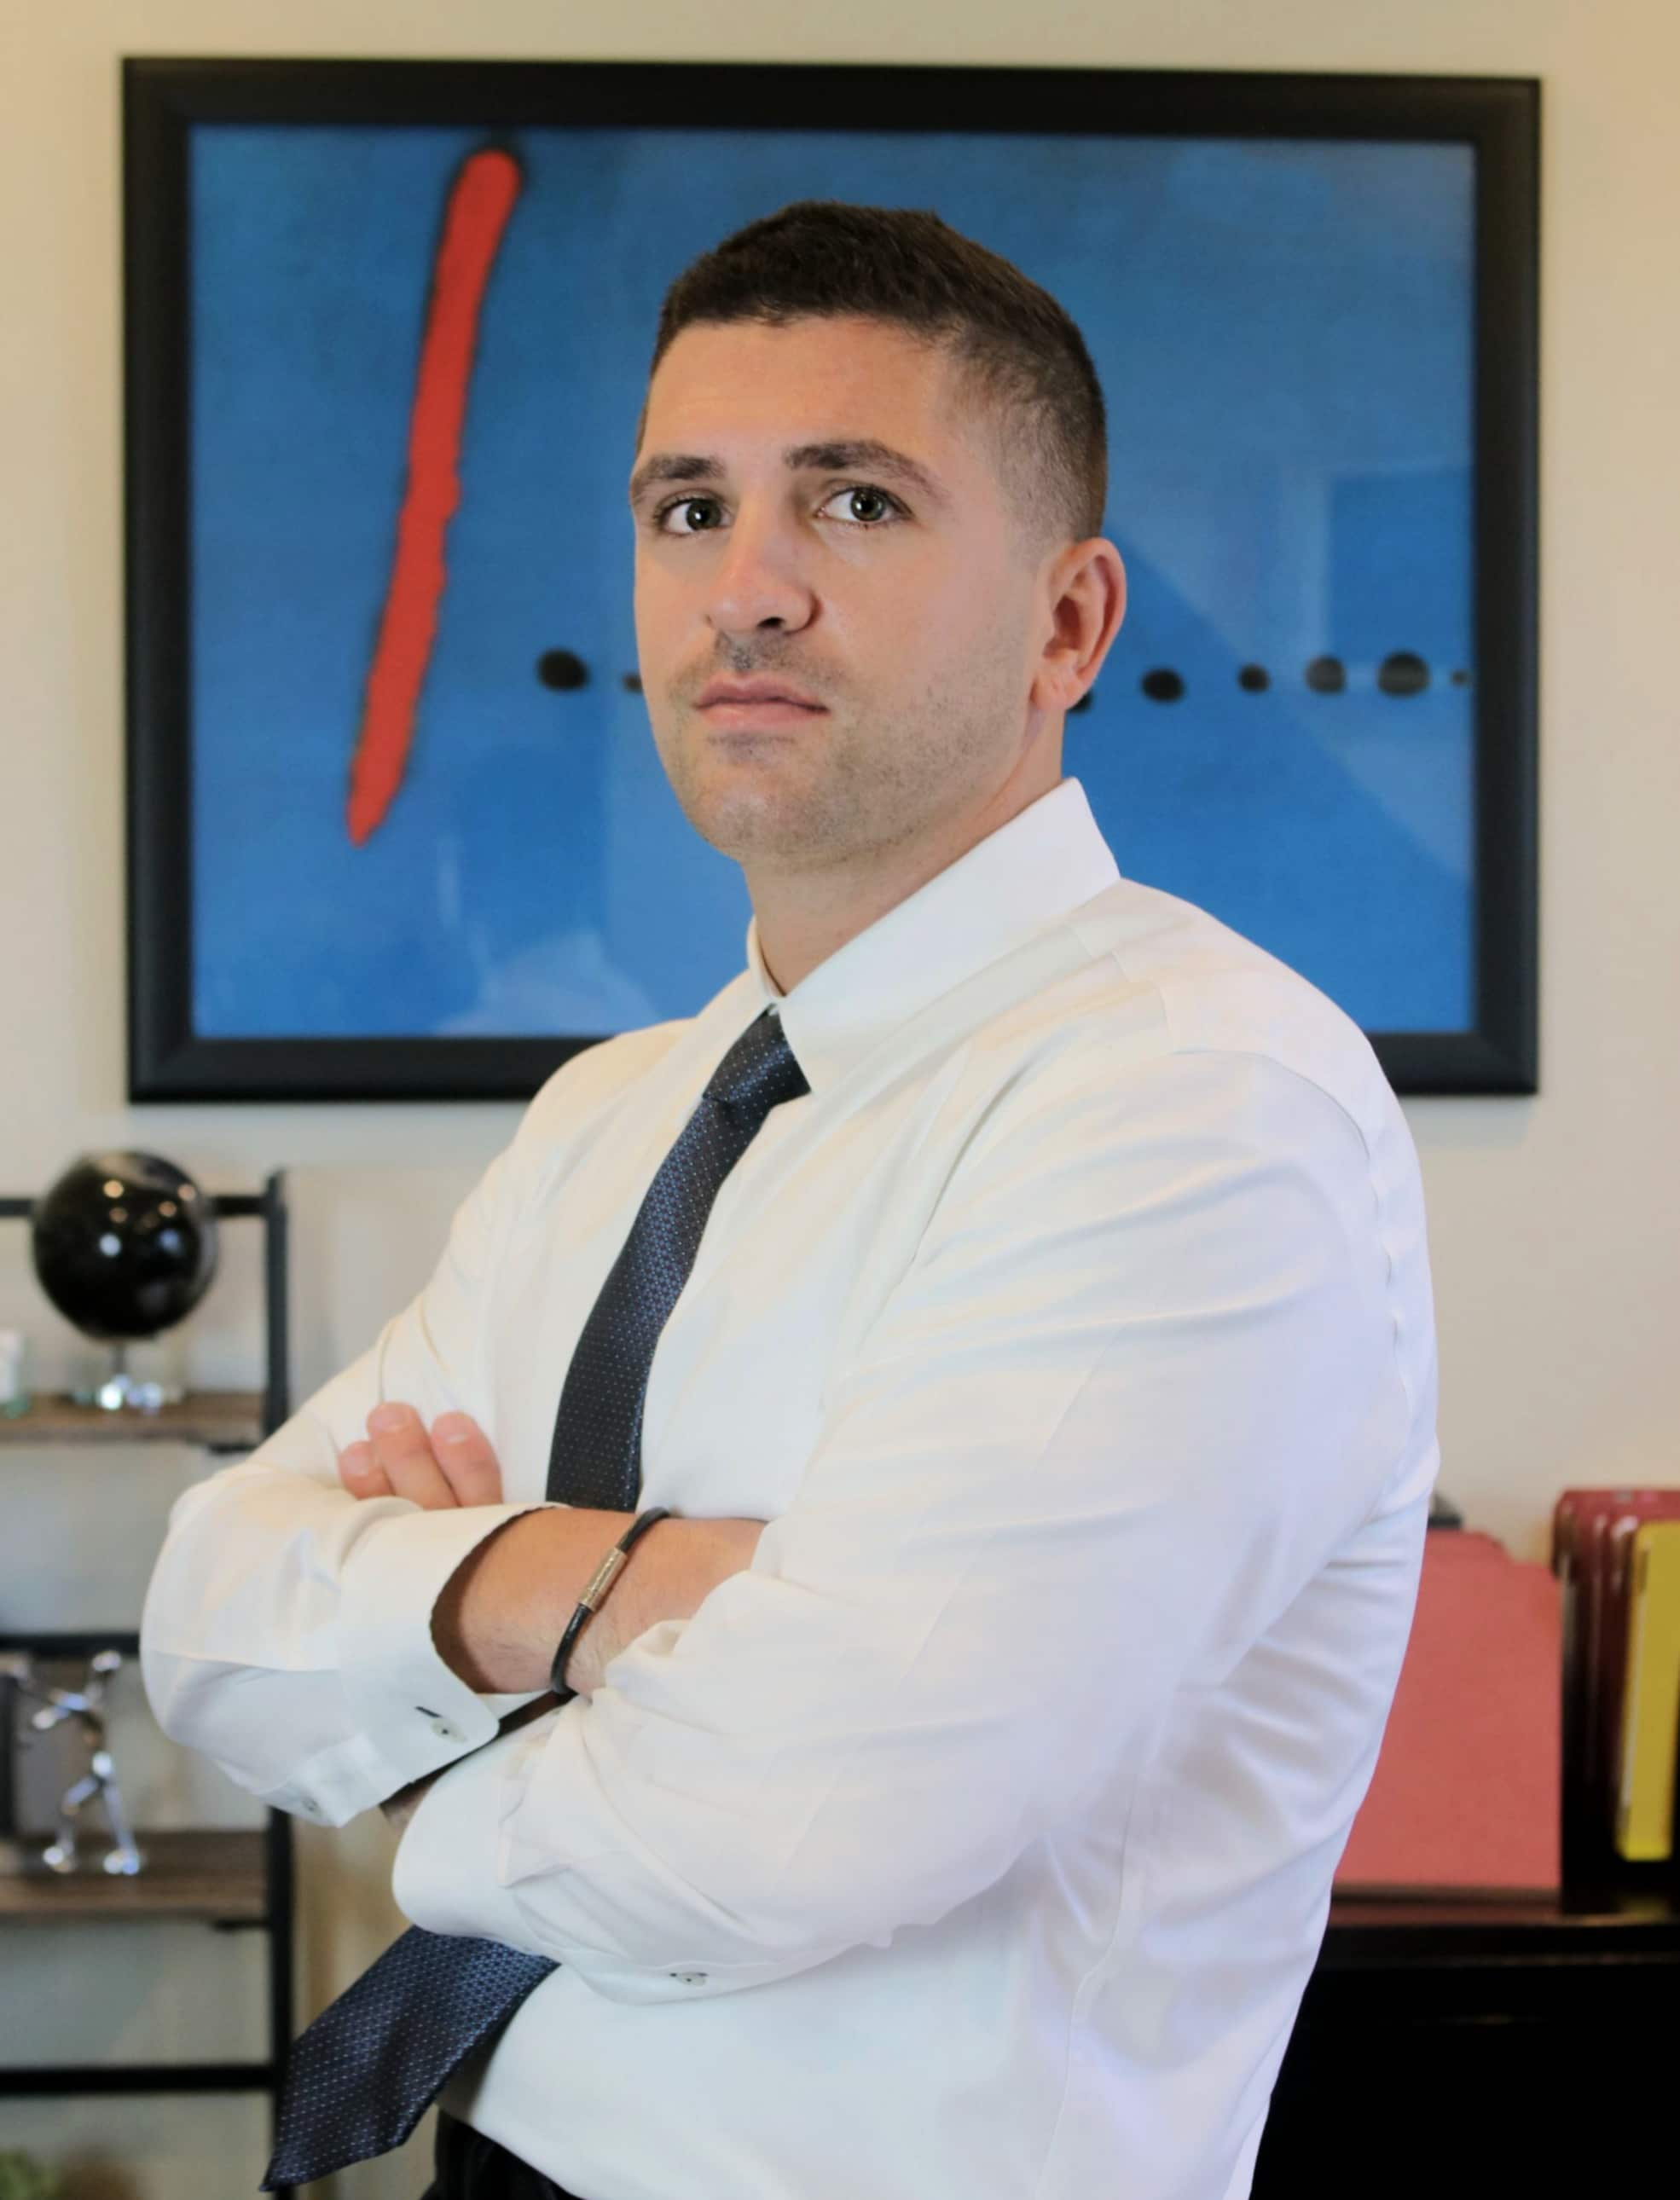 Injury Attorney Kyle Valero